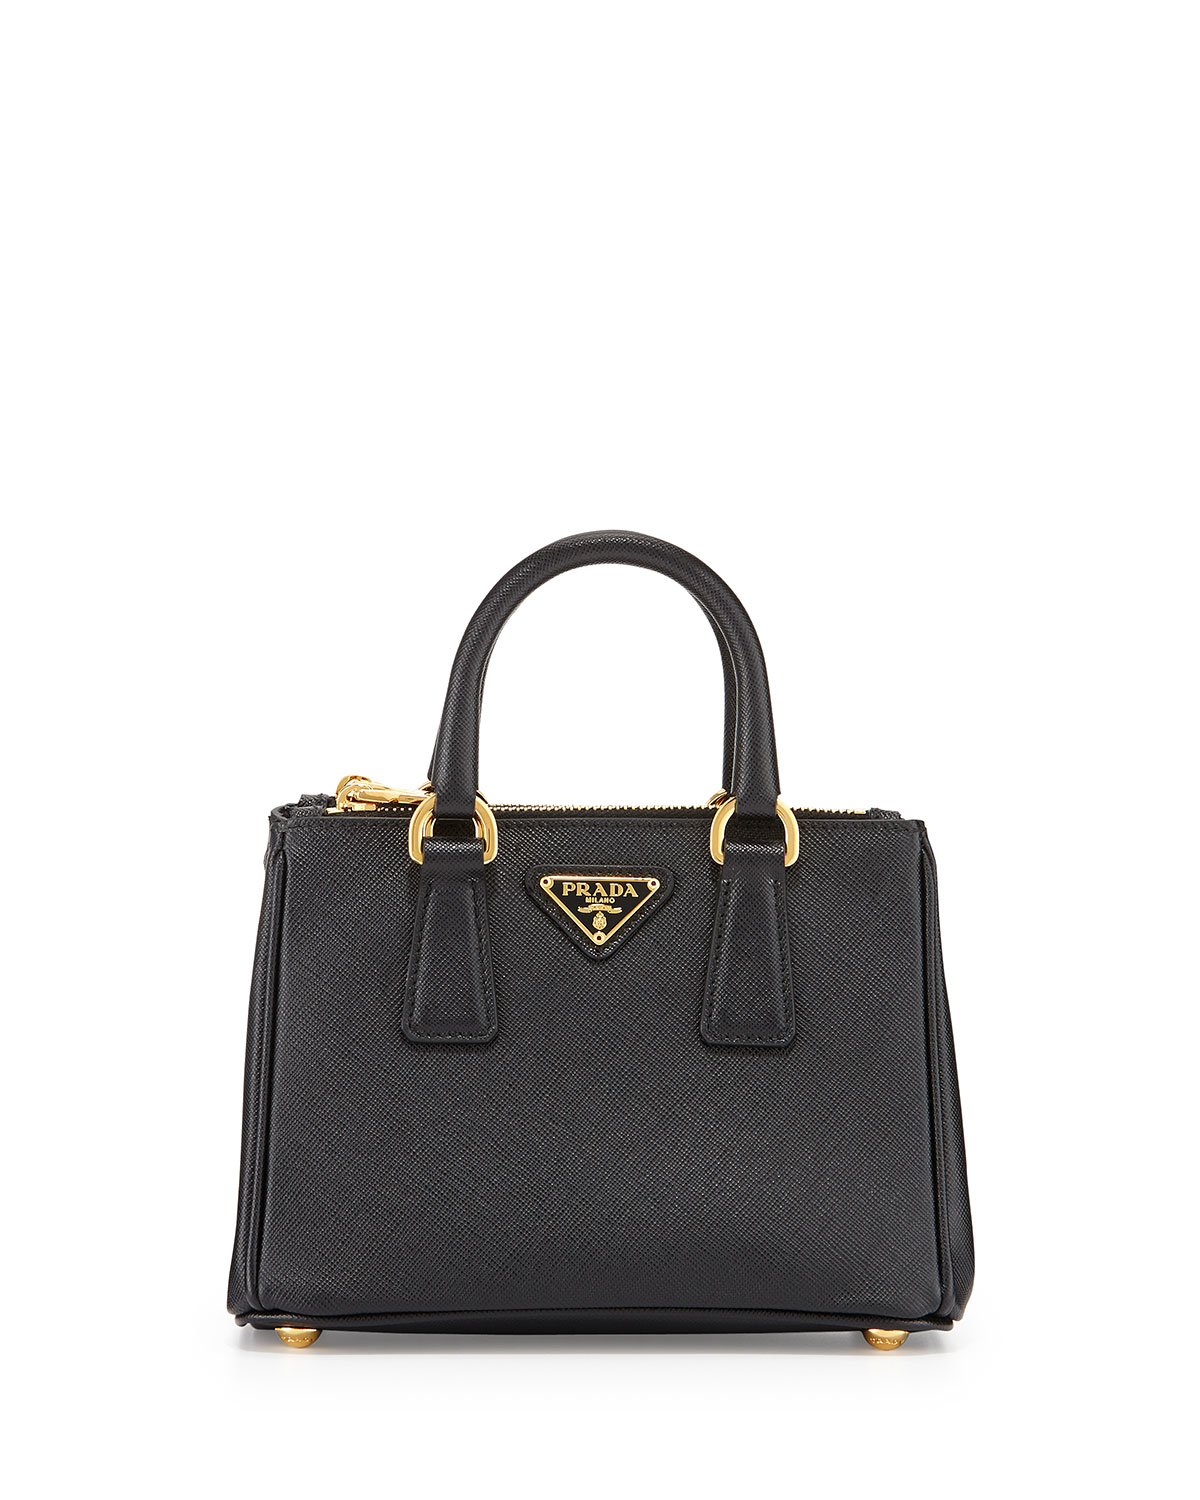 Prada Black Saffiano Mini Galleria Crossbody Bag